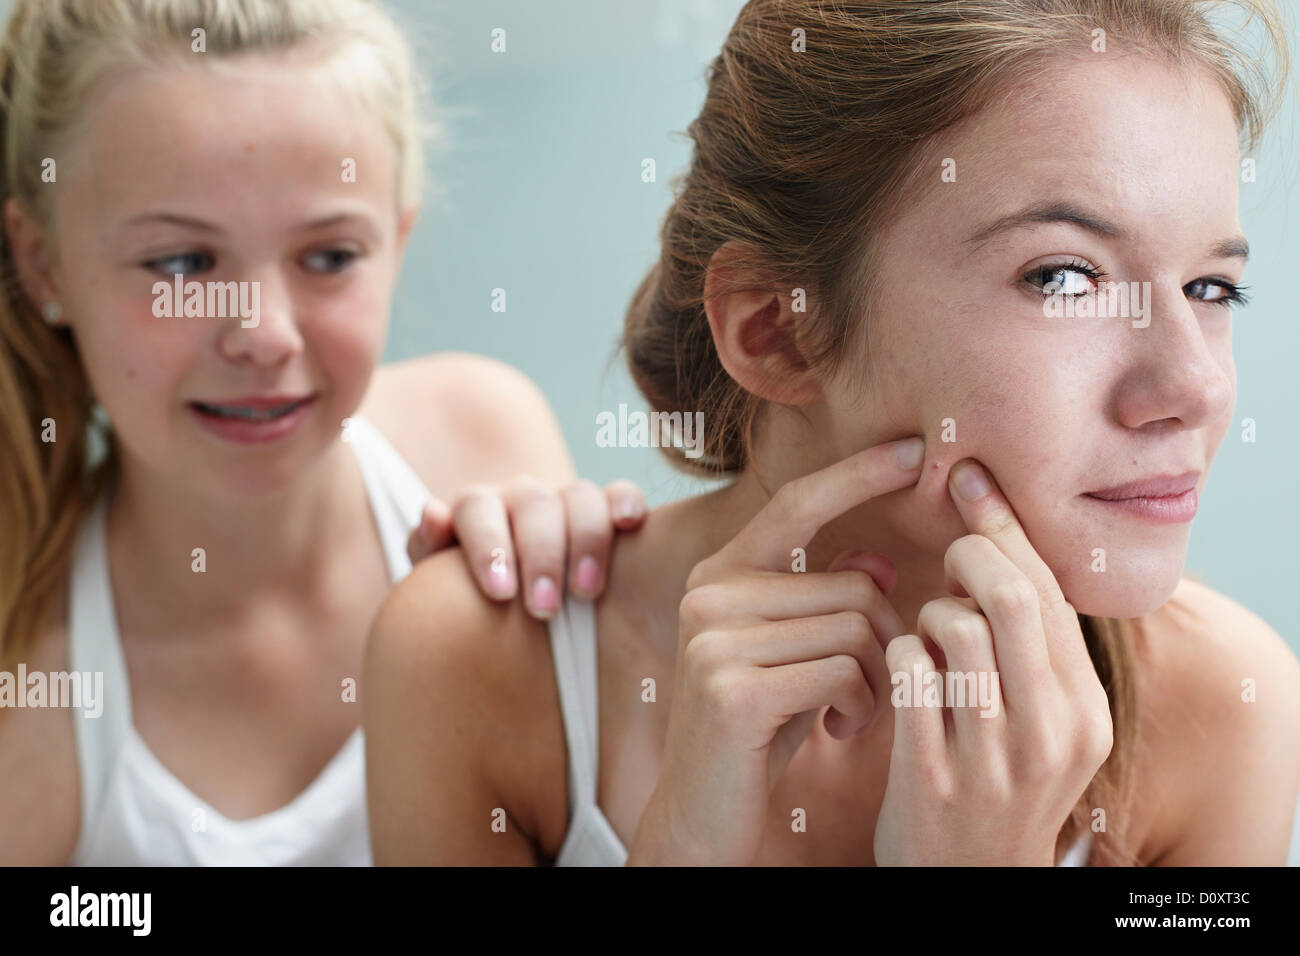 Girl squeezing a spot, friend with hand on shoulder - Stock Image